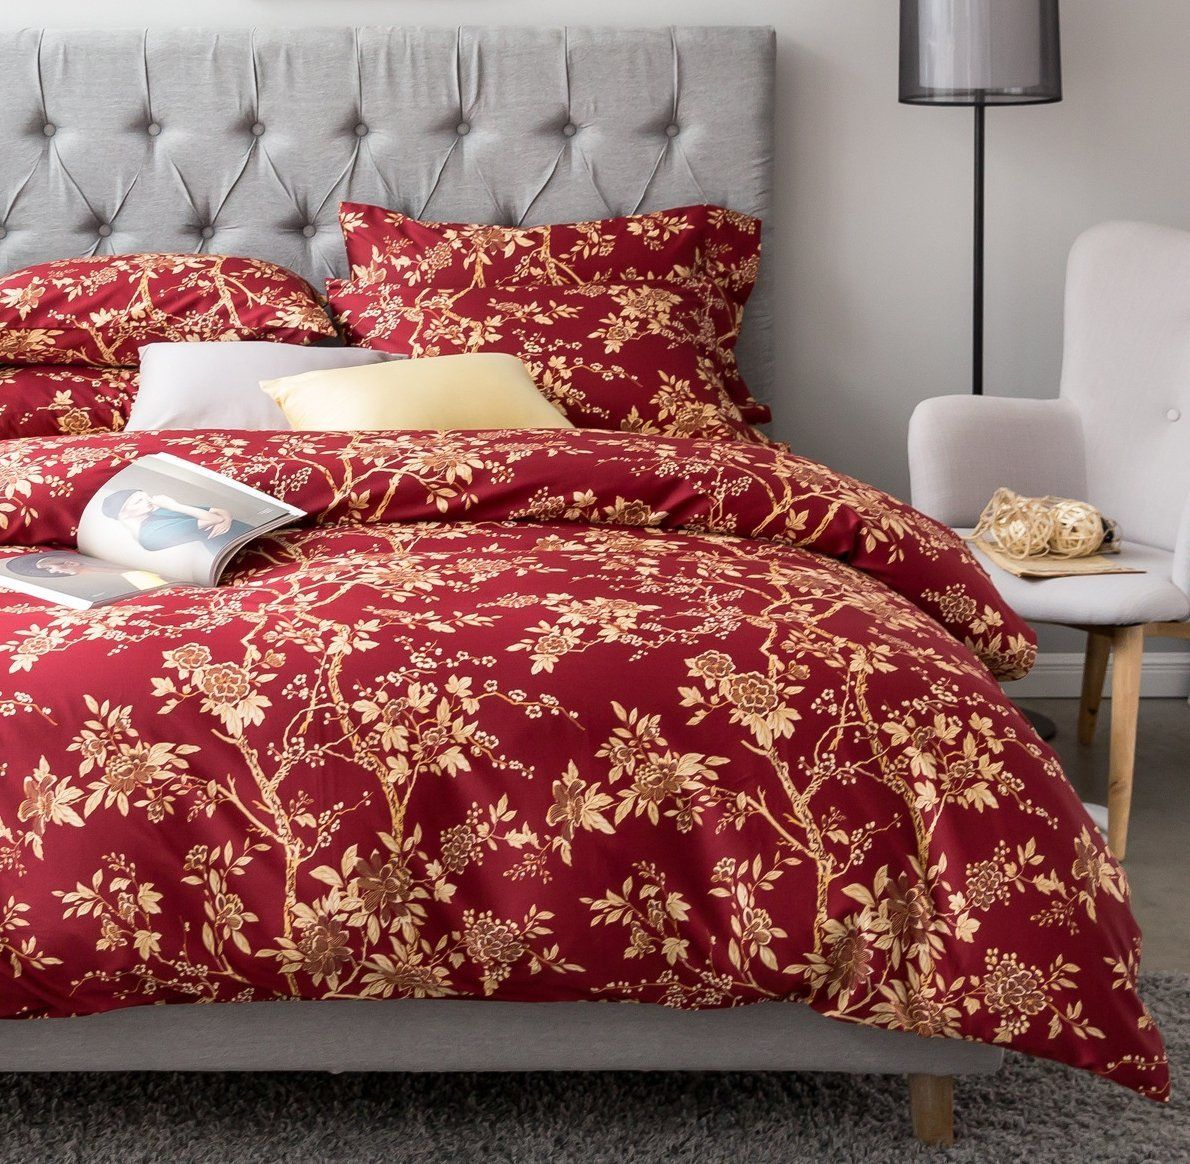 Eastern Floral Chinoiserie Blossom Print Duvet Quilt Cover Navy Blue Tan  White Asian Style